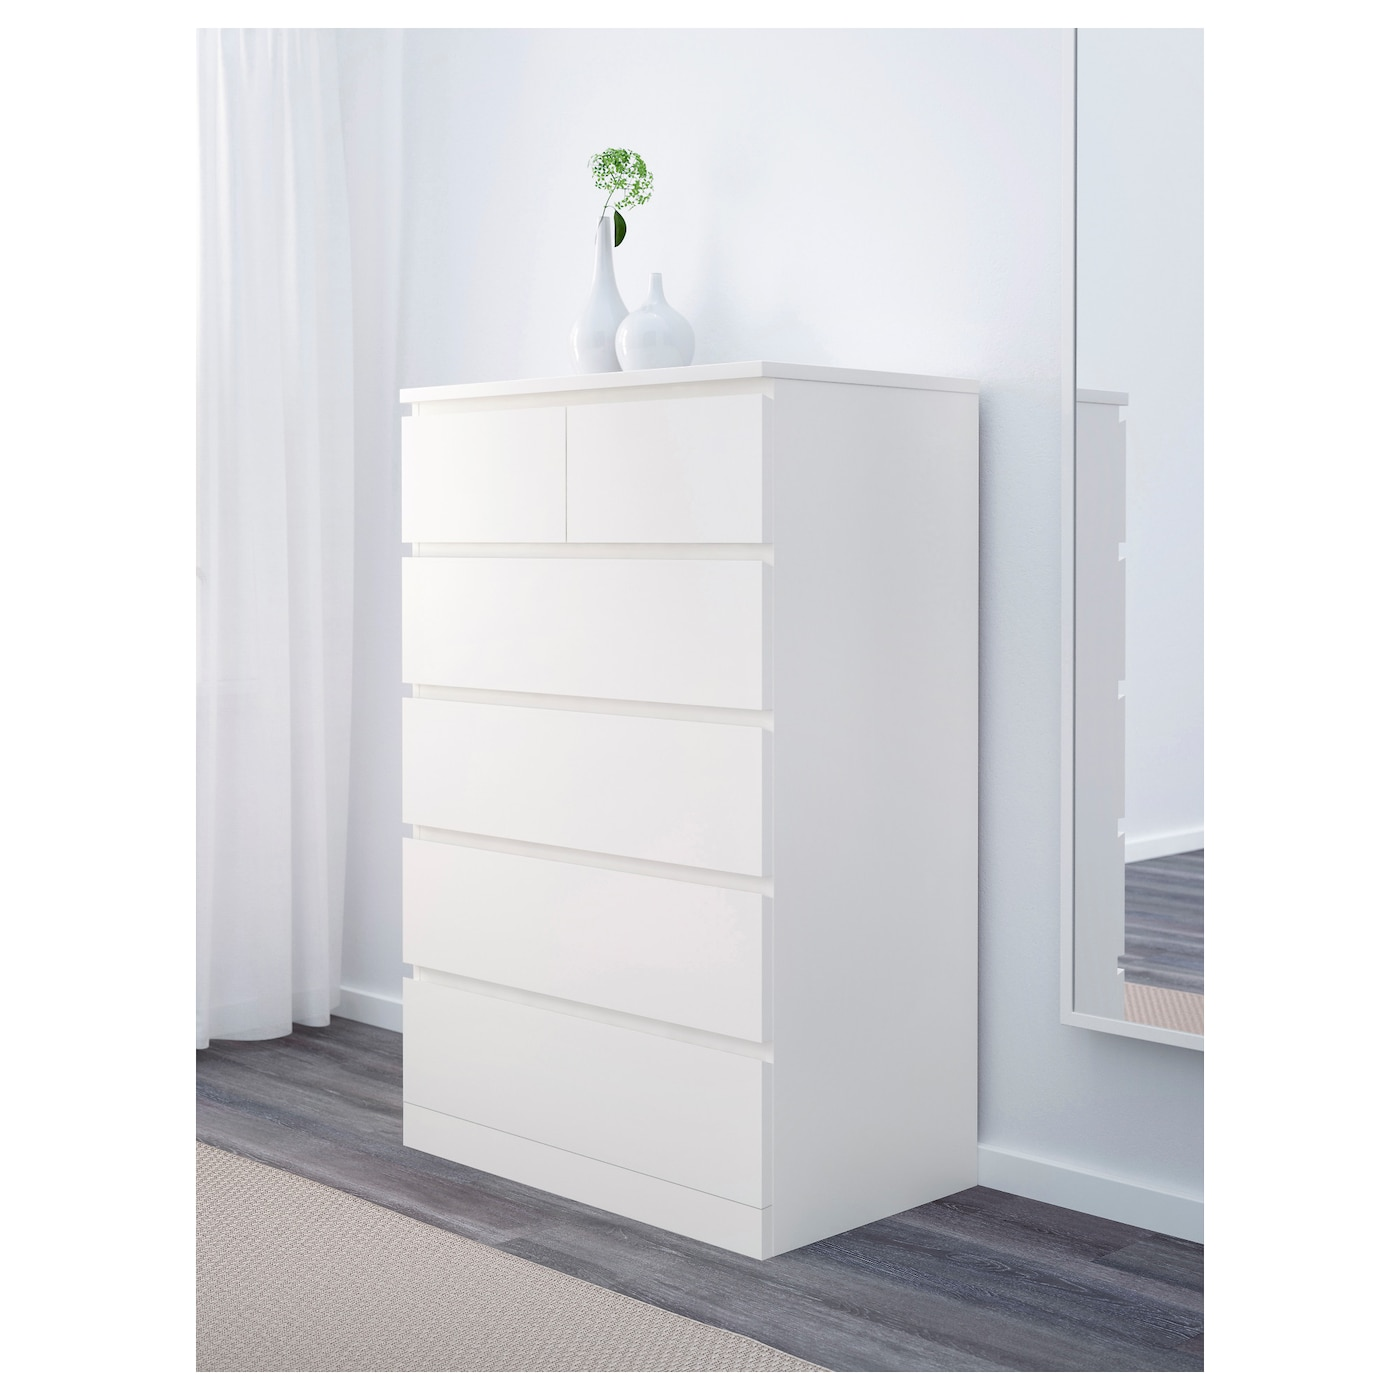 Malm 6 Drawer Chest White 31 1 2x48 3